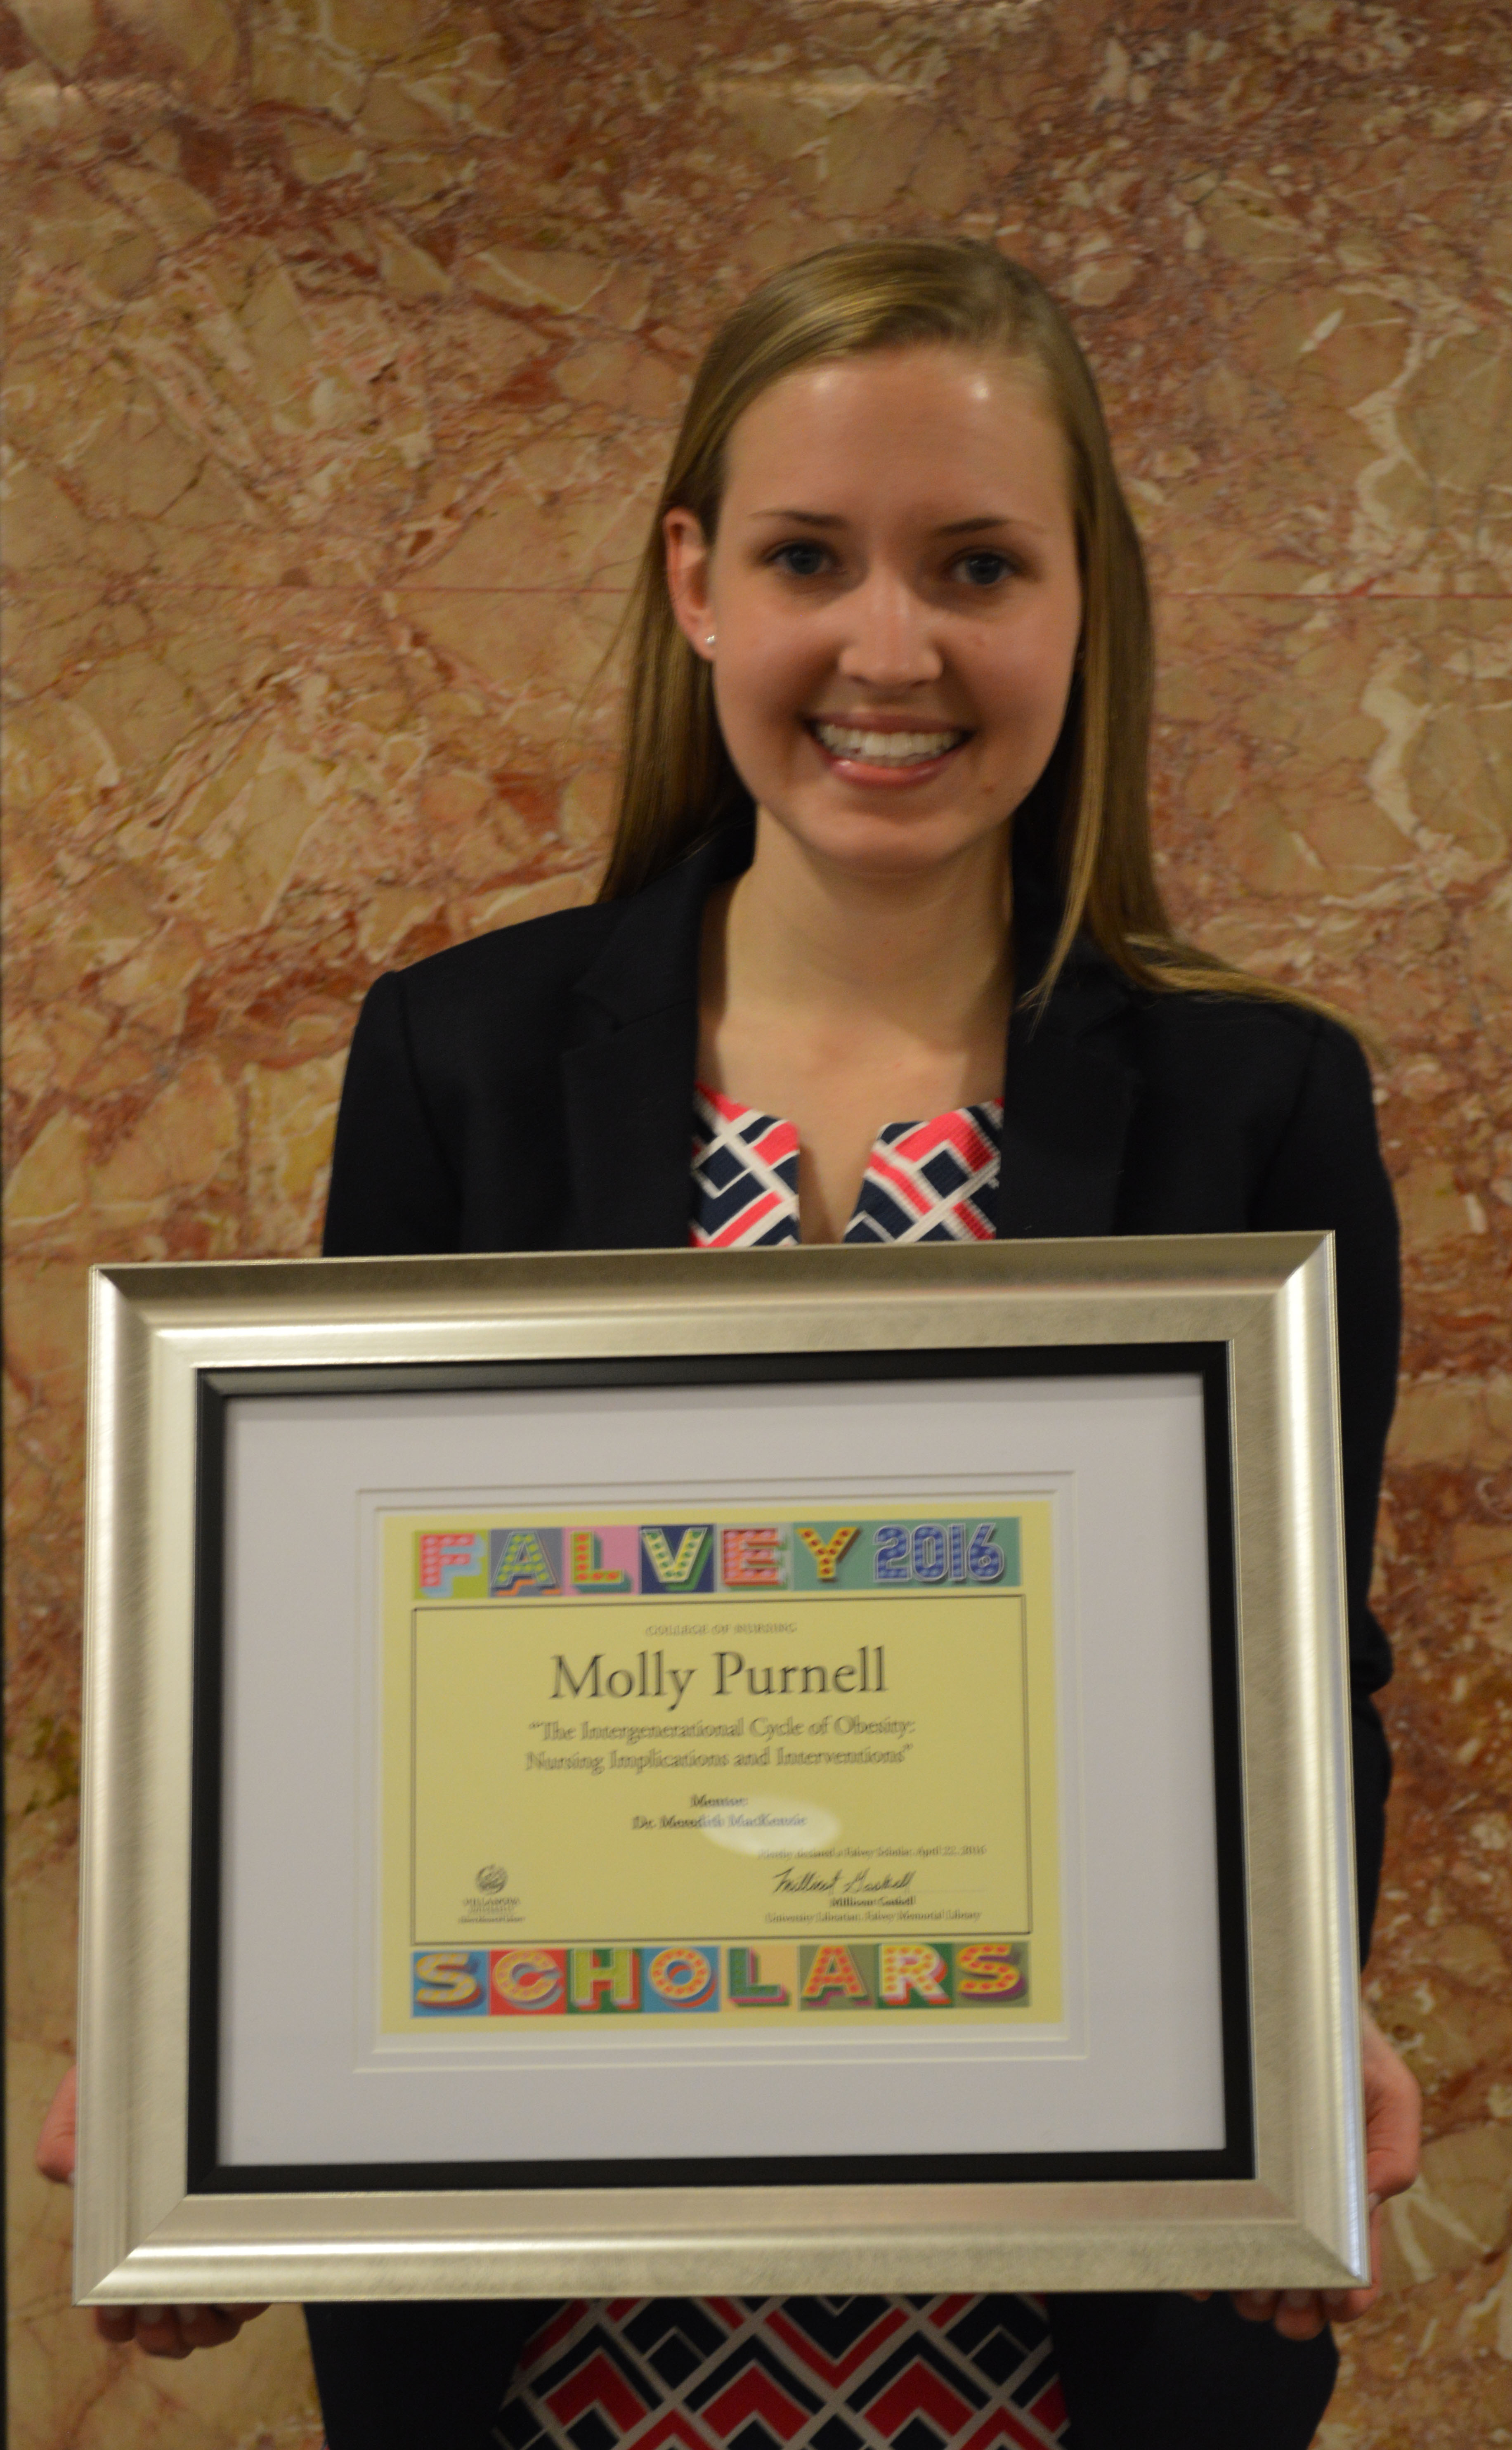 Falvey Scholar Molly Purnell with certificate